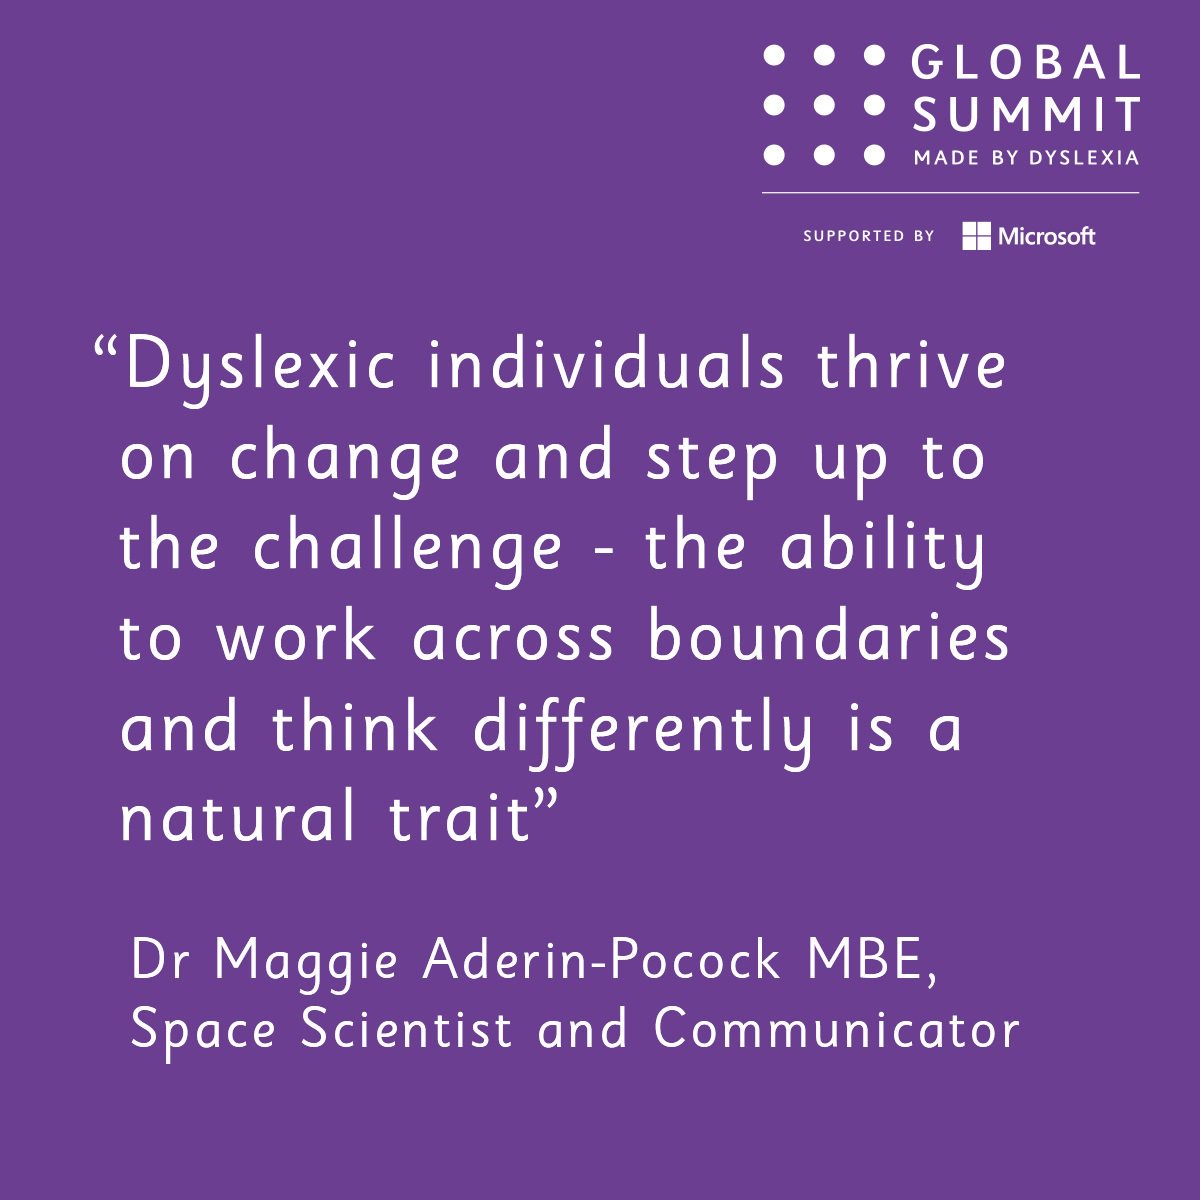 We should be supporting children with dyslexia to realise their potential, starting at school and running right through to the world of work https://t.co/bl5pMMiz7i